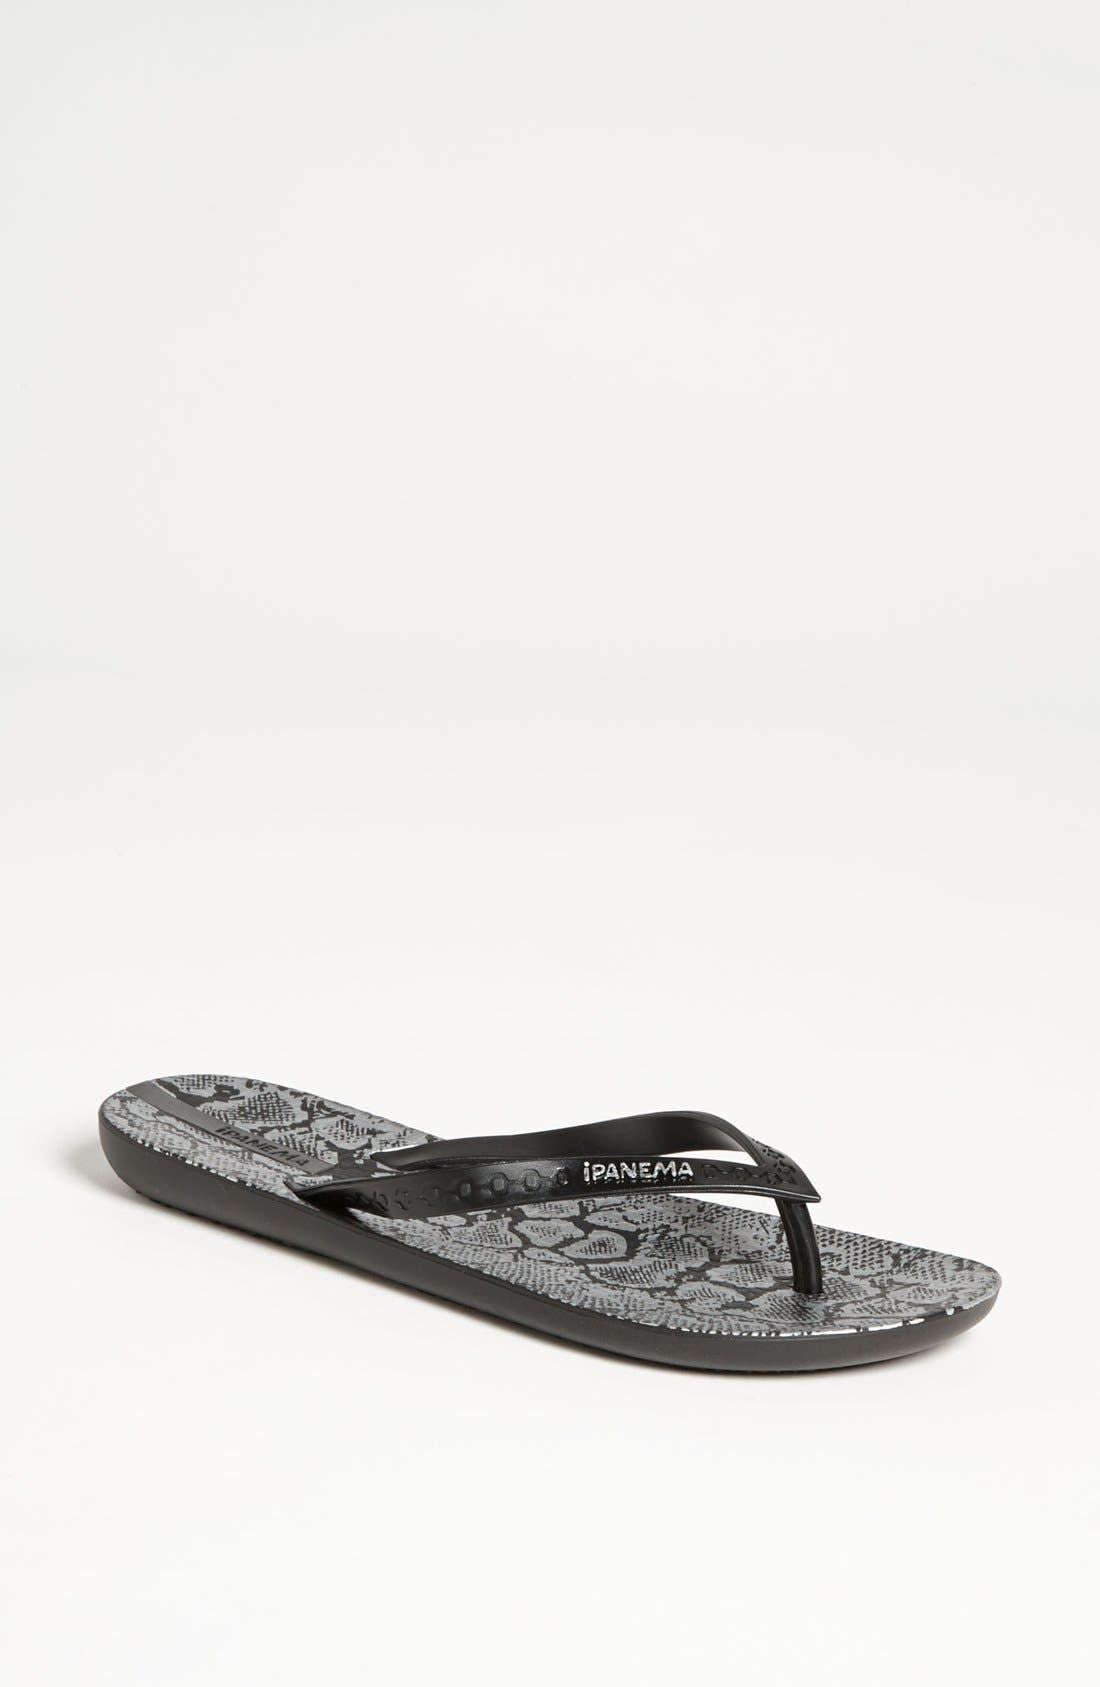 Alternate Image 1 Selected - Ipanema Python Print Flip Flop